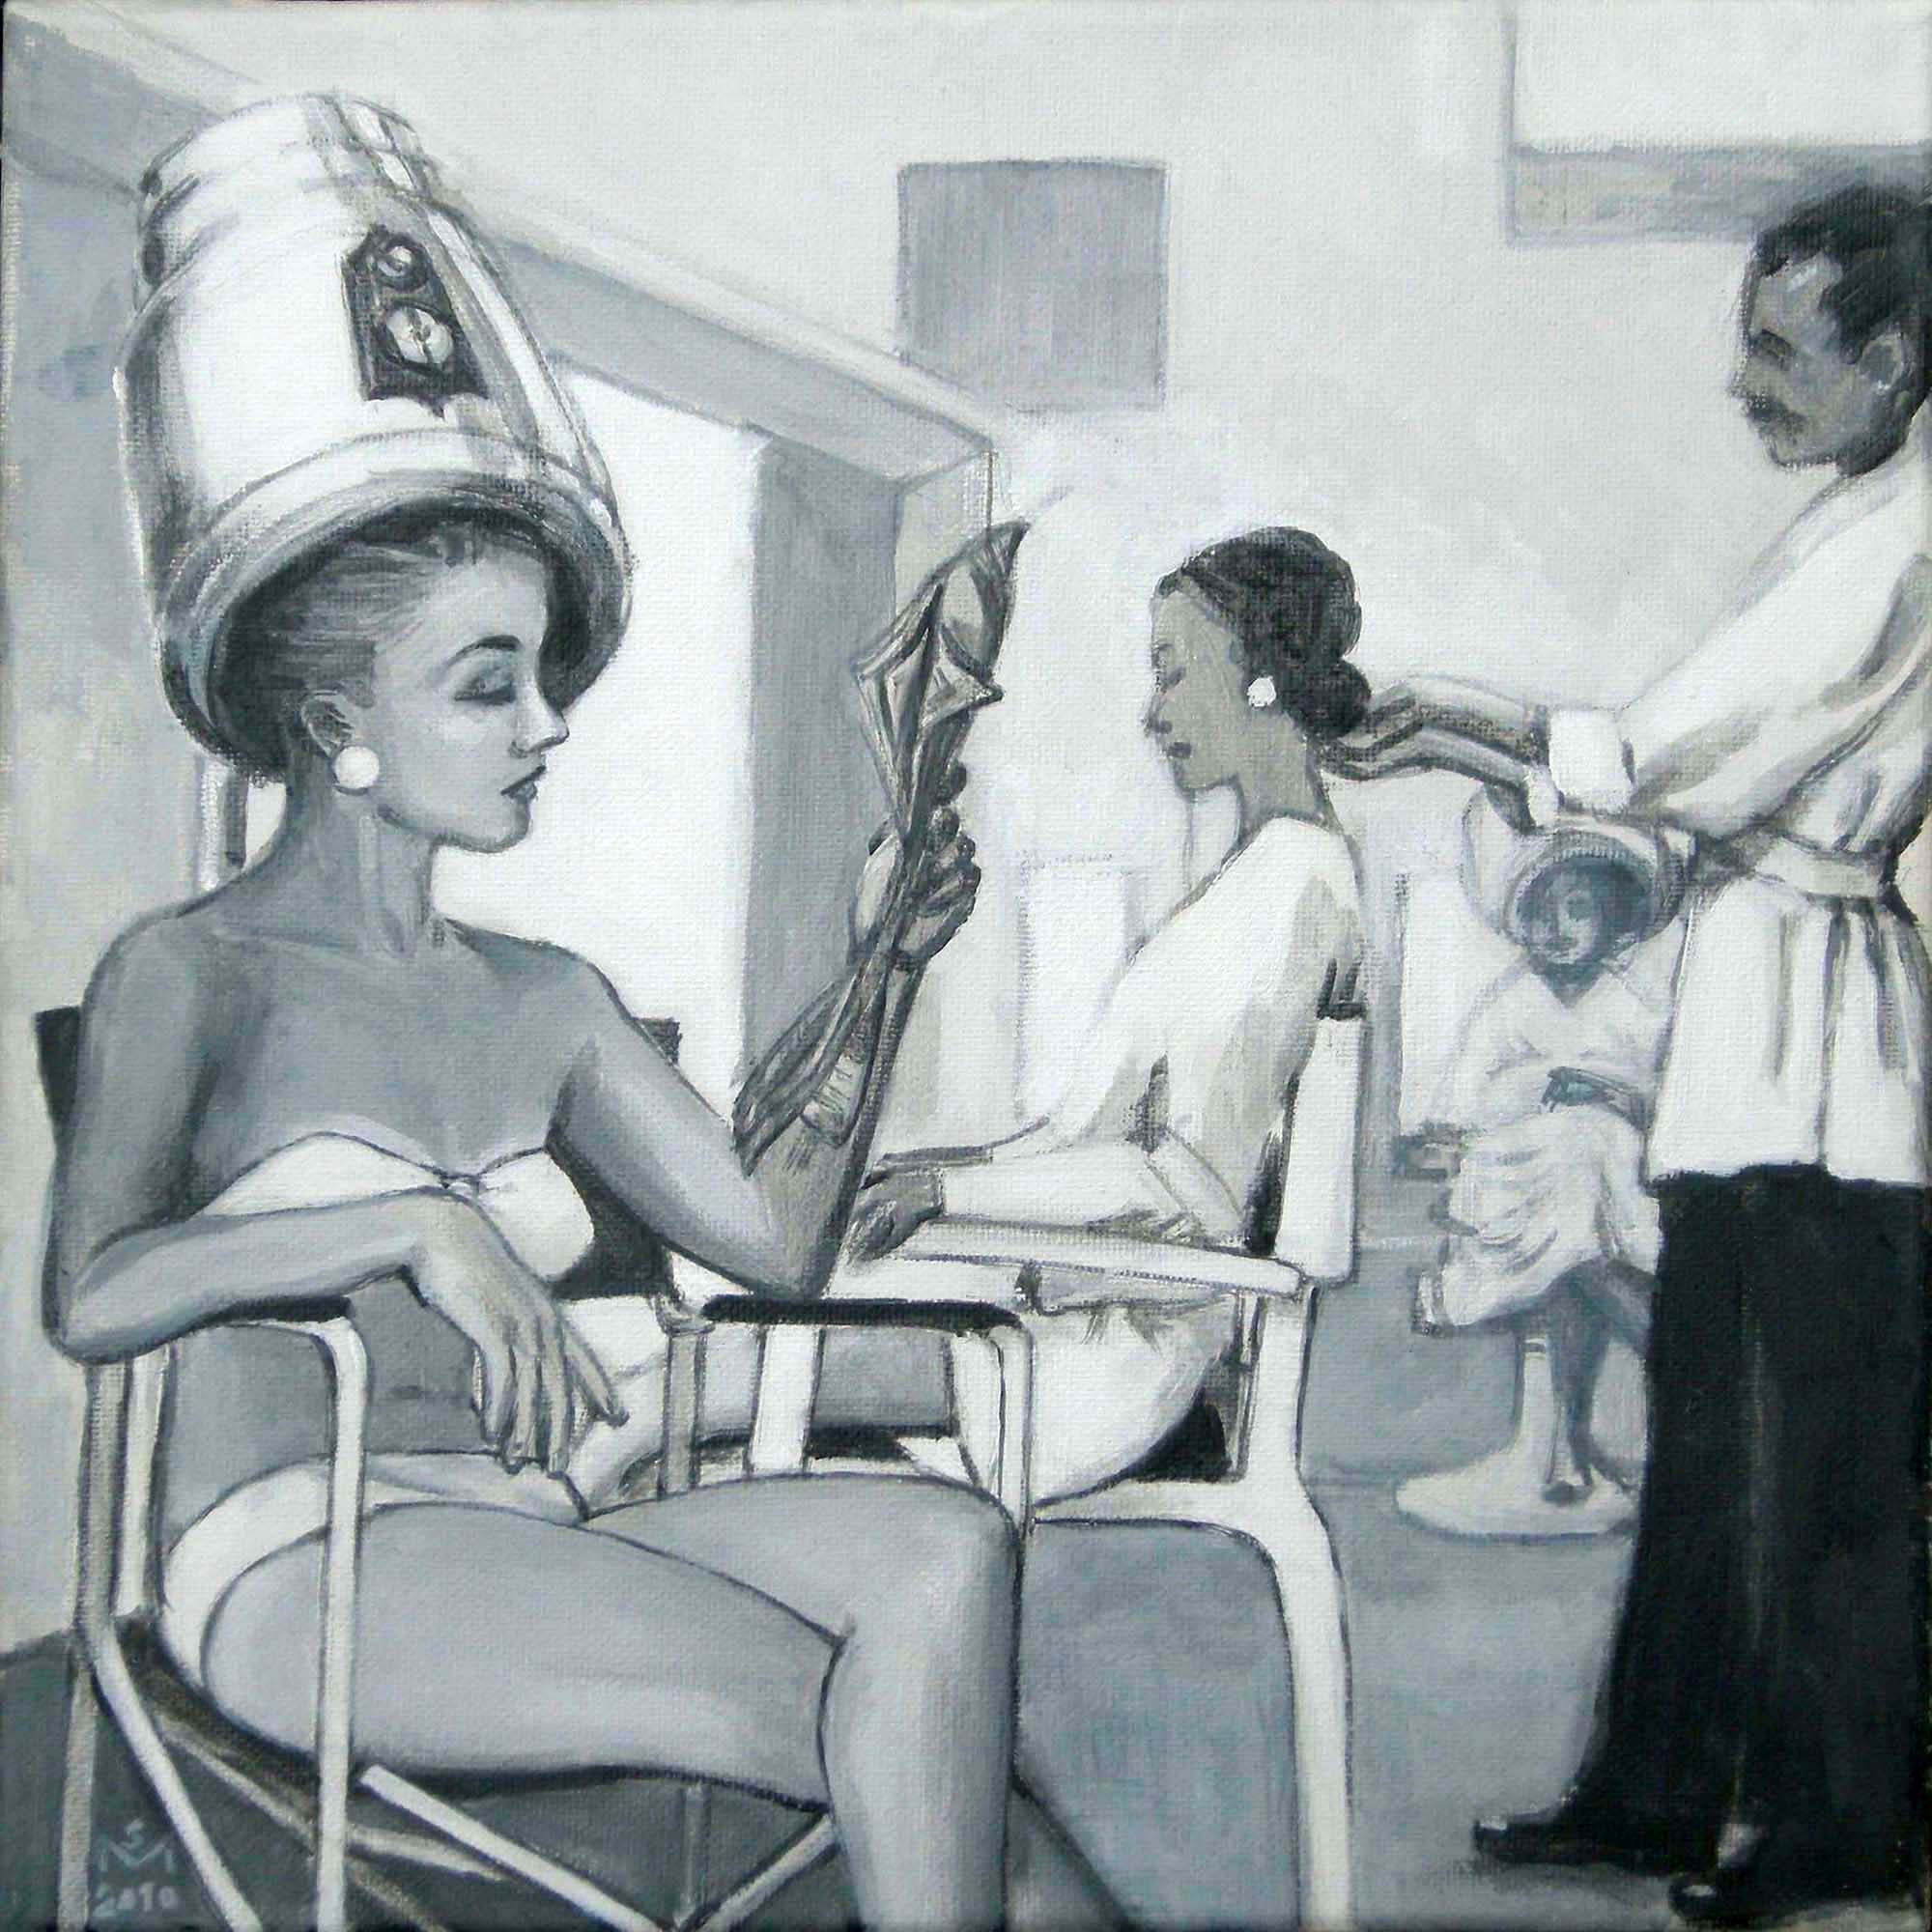 Woman wearing a bikini in a beauty salon | © Sarah Morrissette